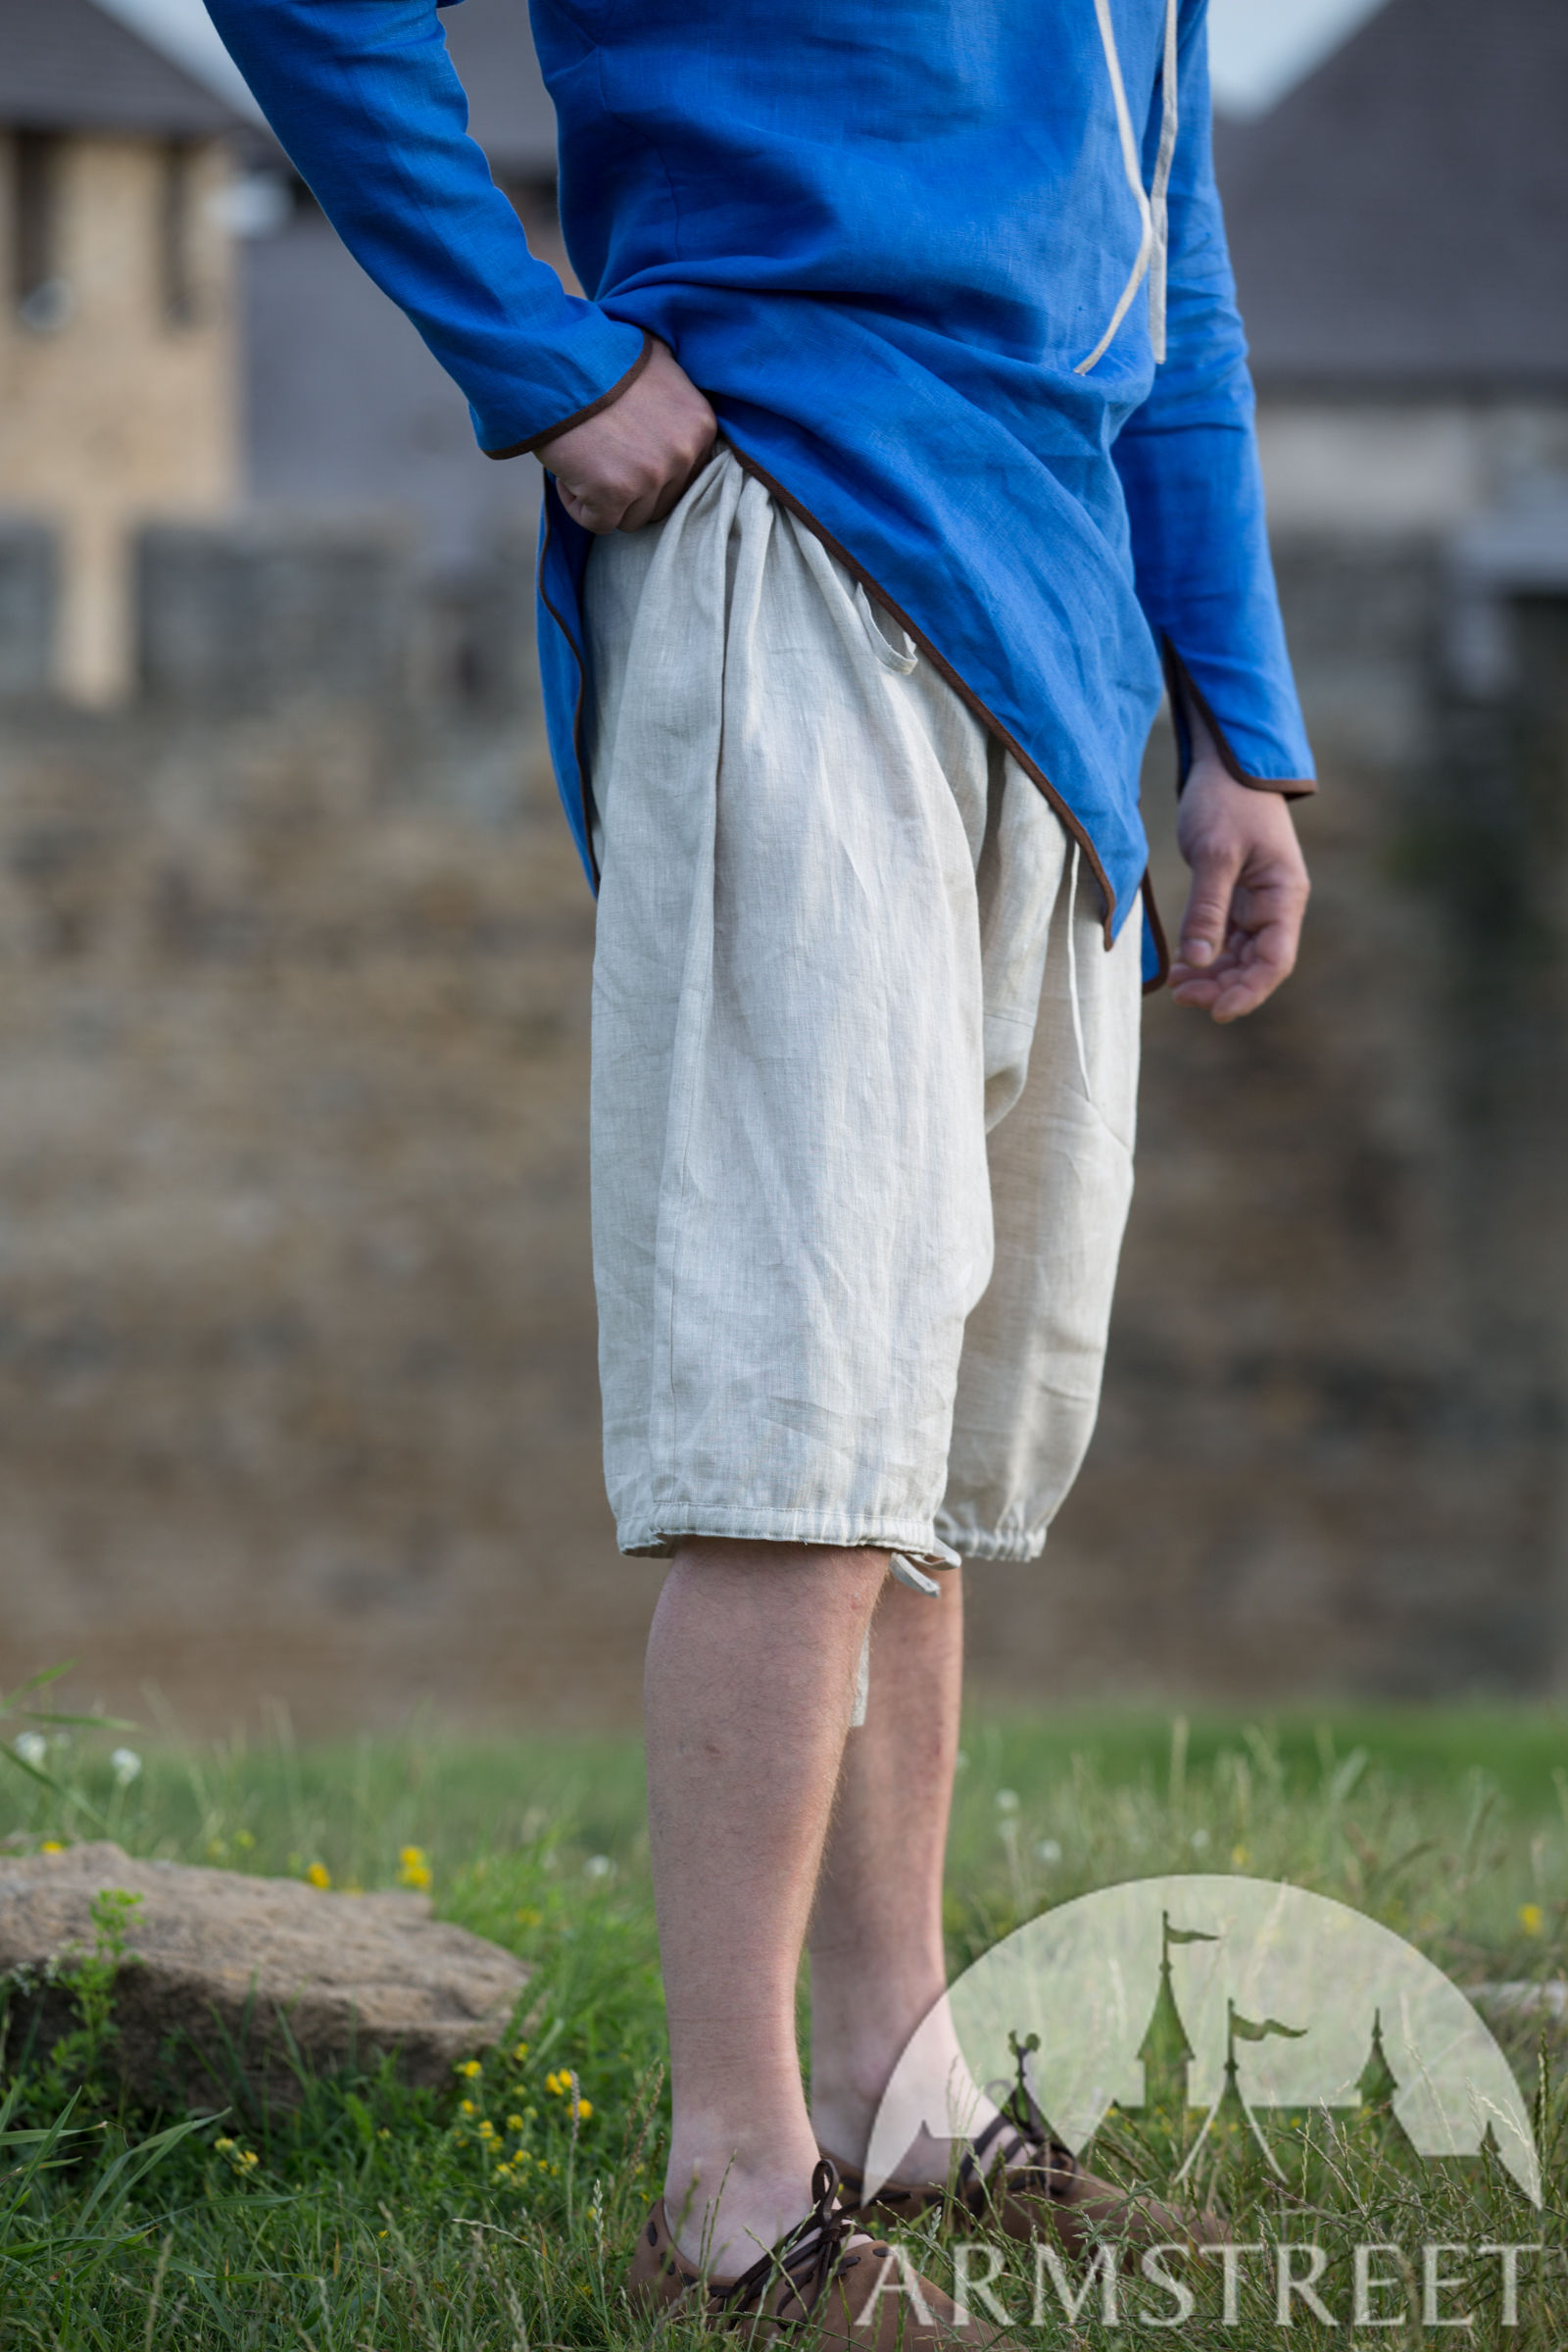 Linen medieval men's underpants for sale. Available in